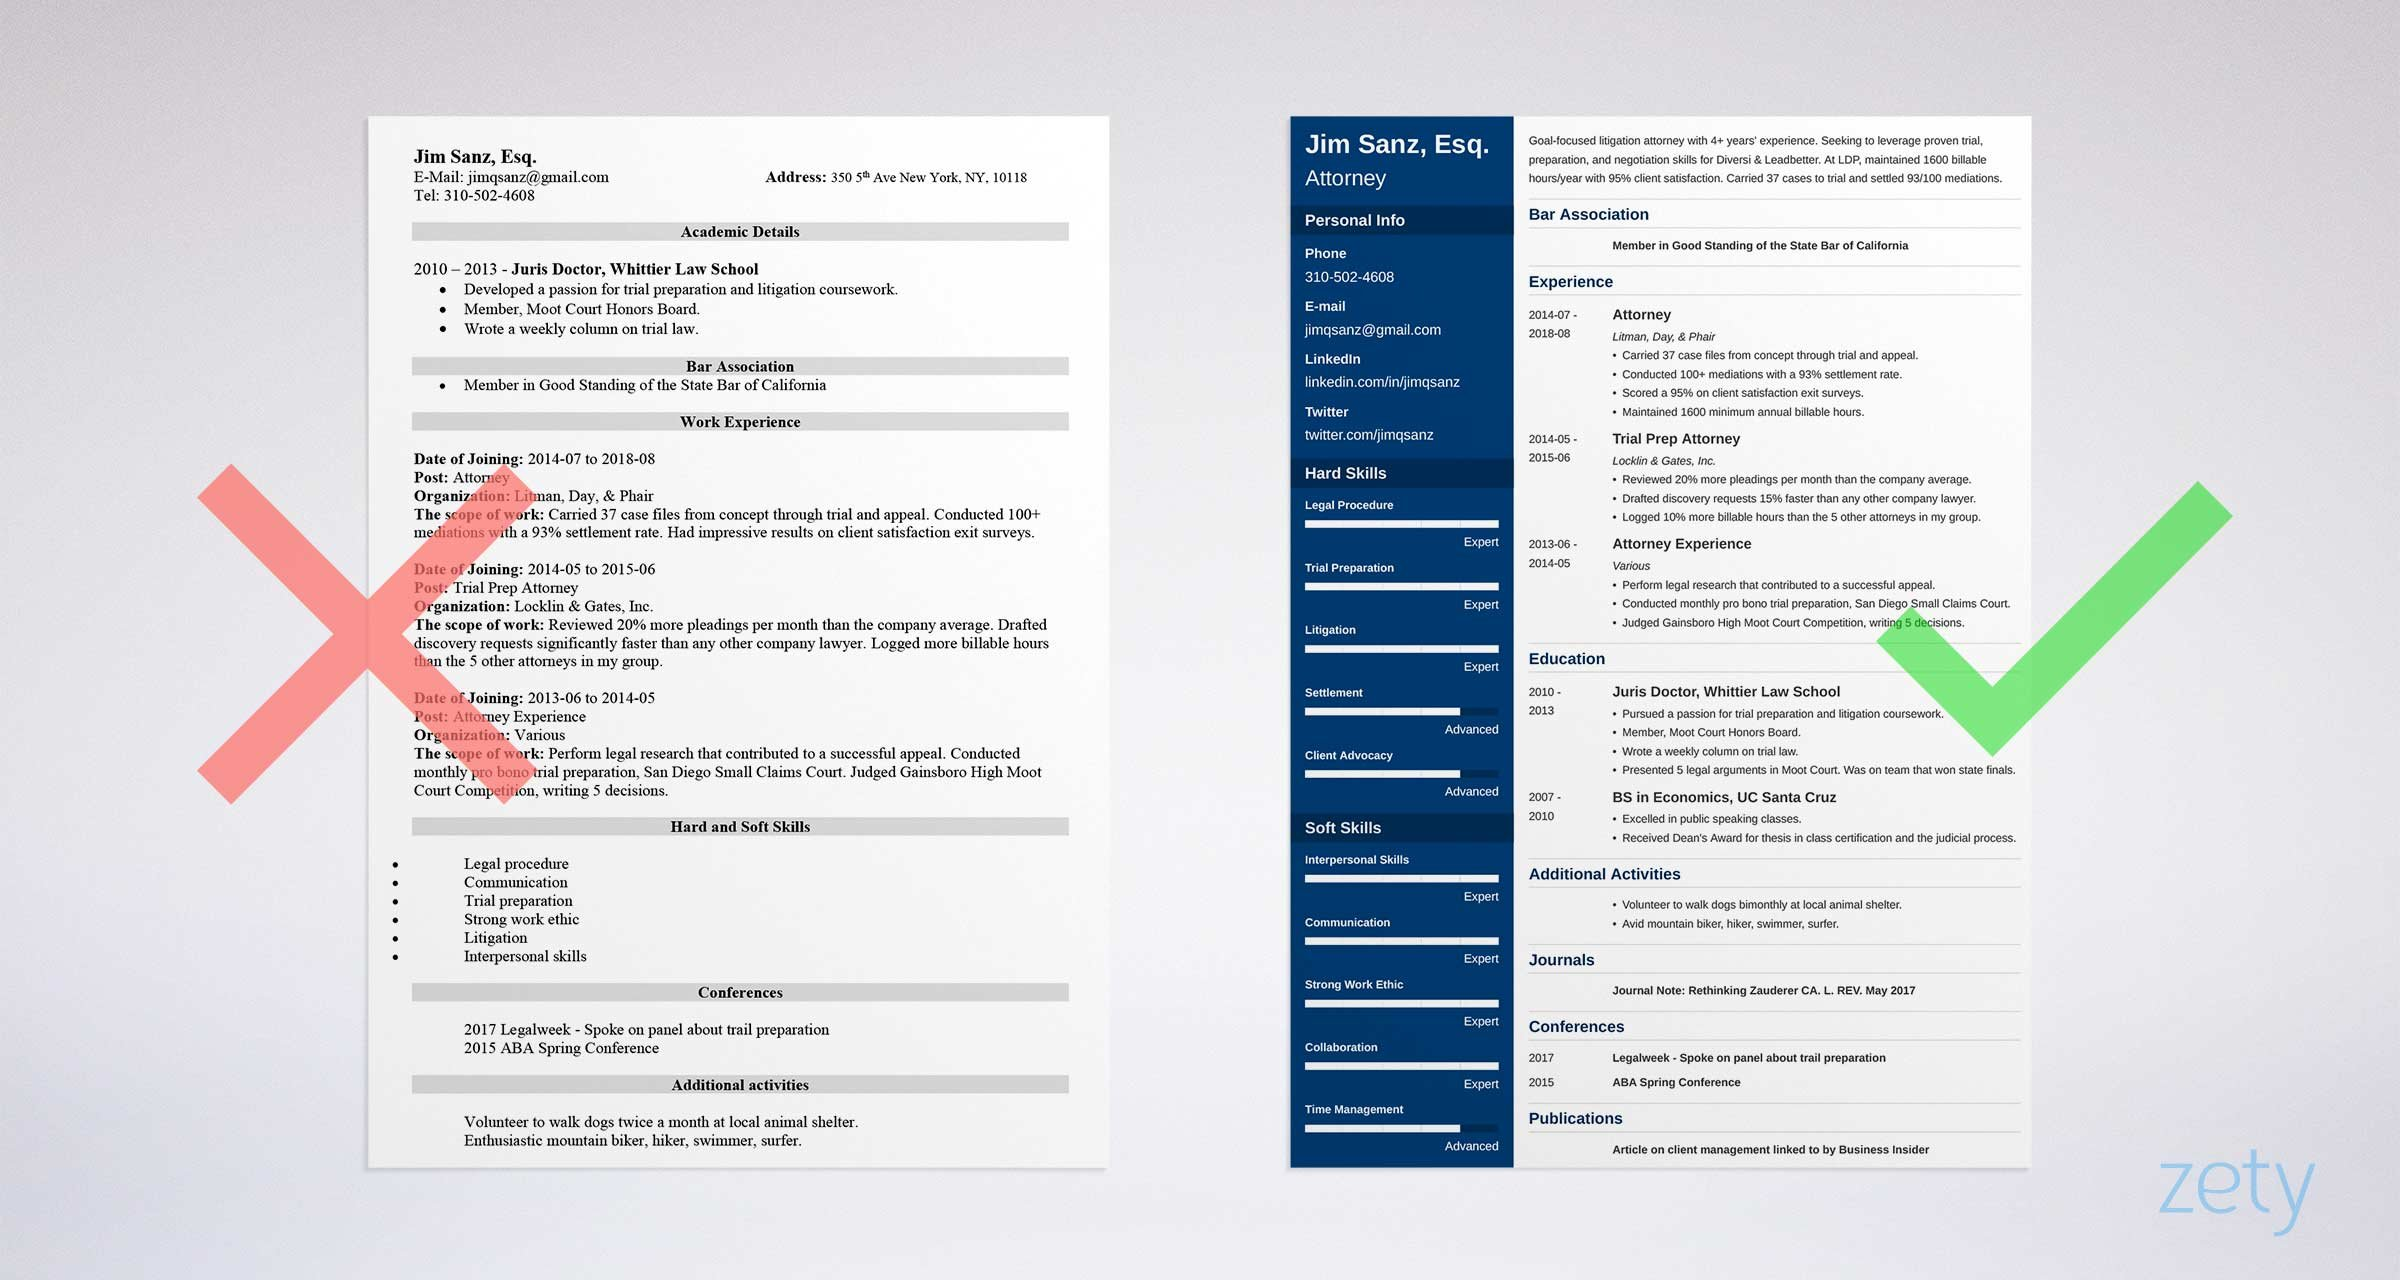 attorney resume lawyer samples guide best sample project manager job first simple Resume Best Attorney Resume Sample